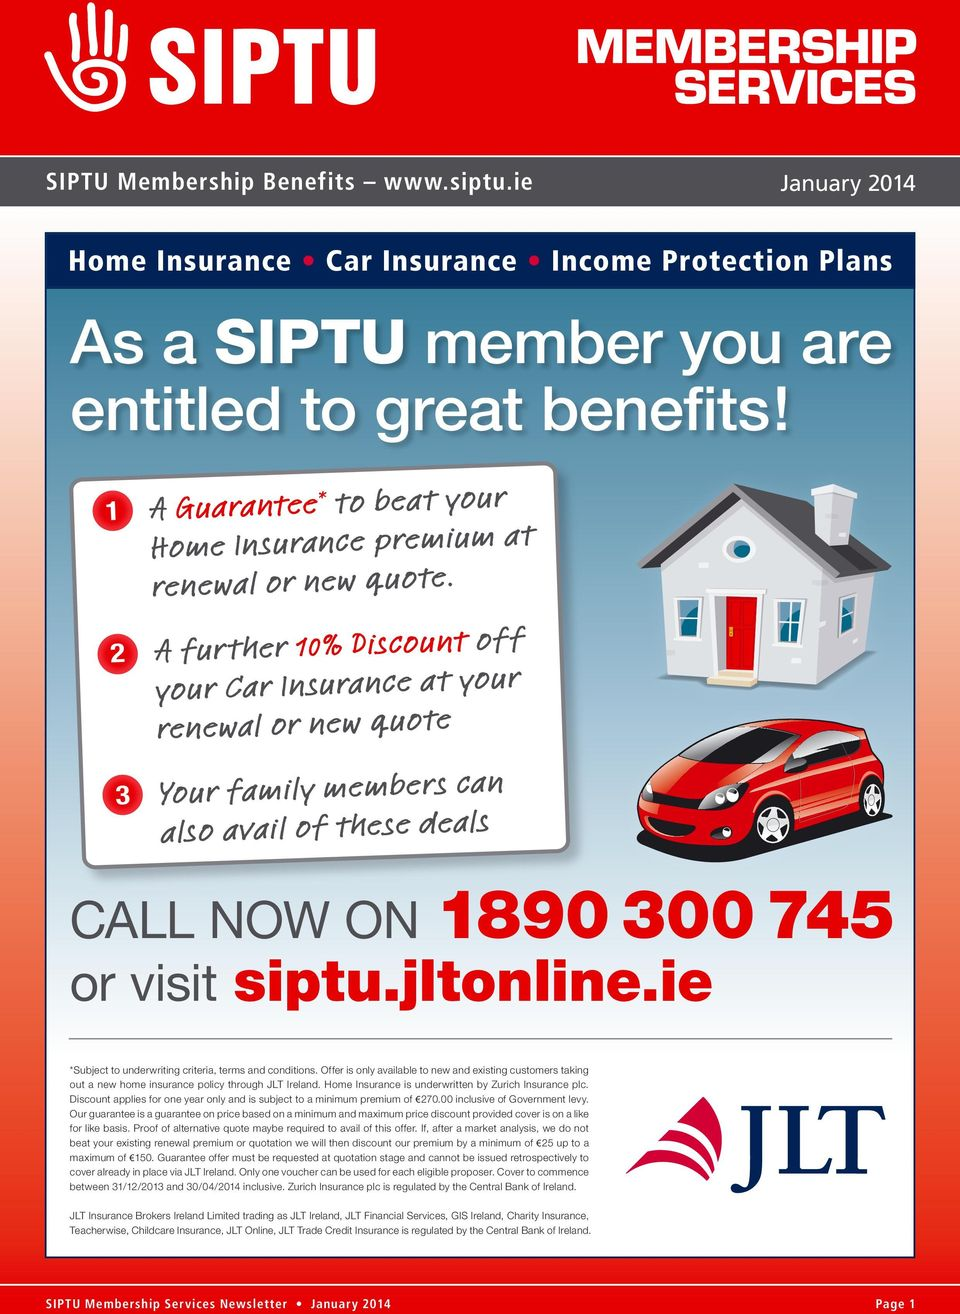 ie *Subject to underwriting criteria, terms and conditions. Offer is only available to new and existing customers taking out a new home insurance policy through JLT Ireland.